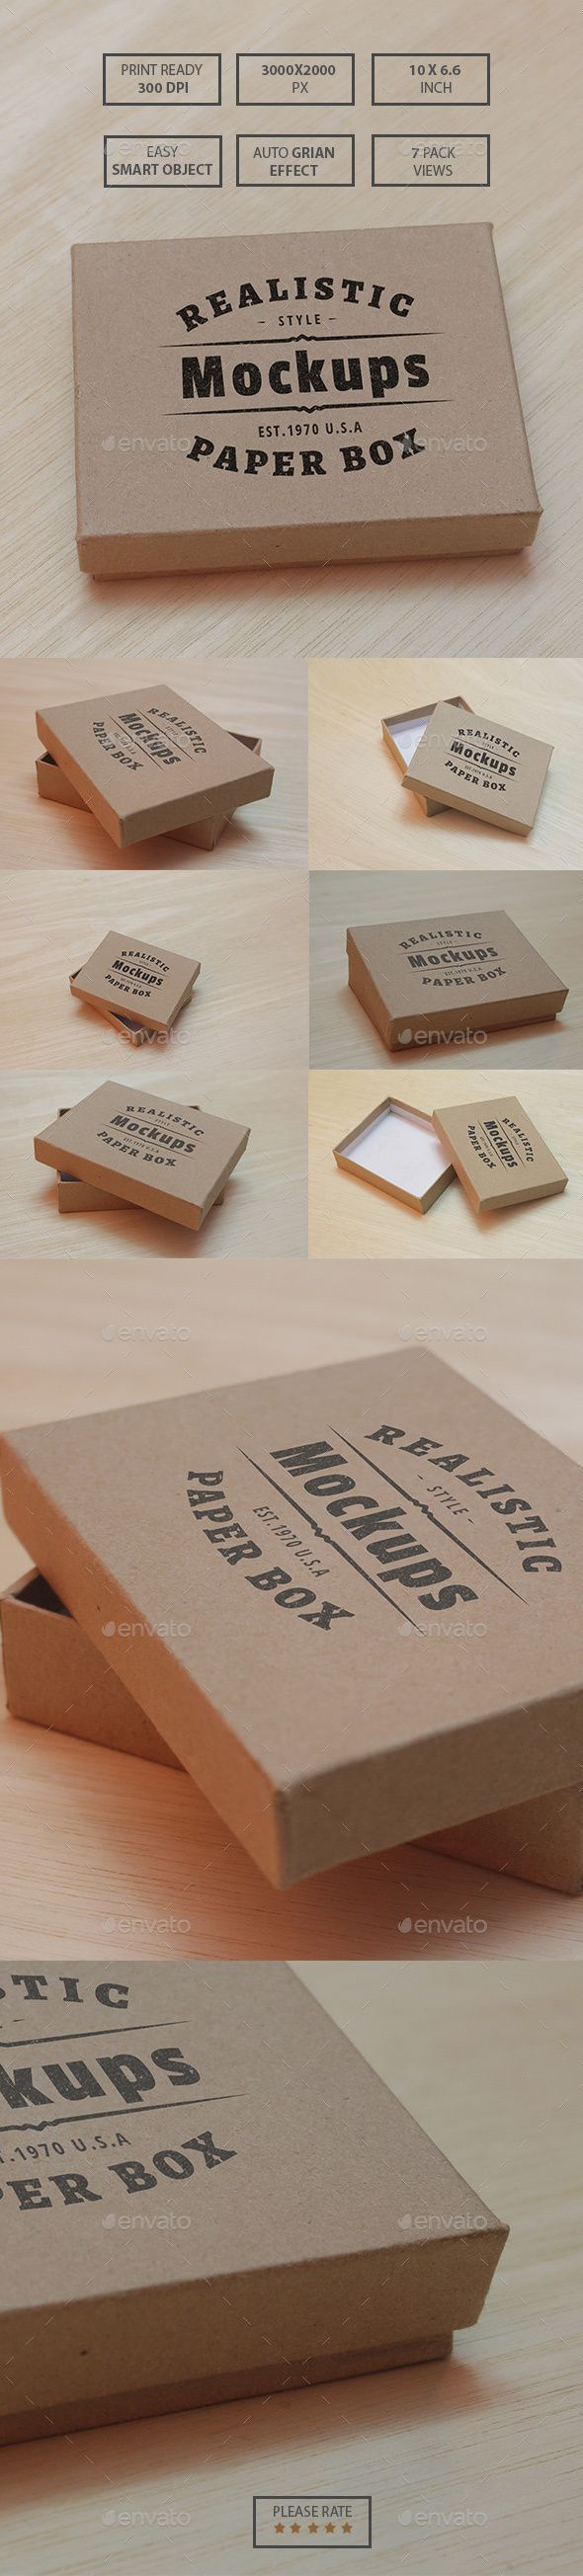 Paper Box Realistic Mockups — Photoshop PSD #vintage #eco • Available here → https://graphicriver.net/item/paper-box-realistic-mockups/13964771?ref=pxcr